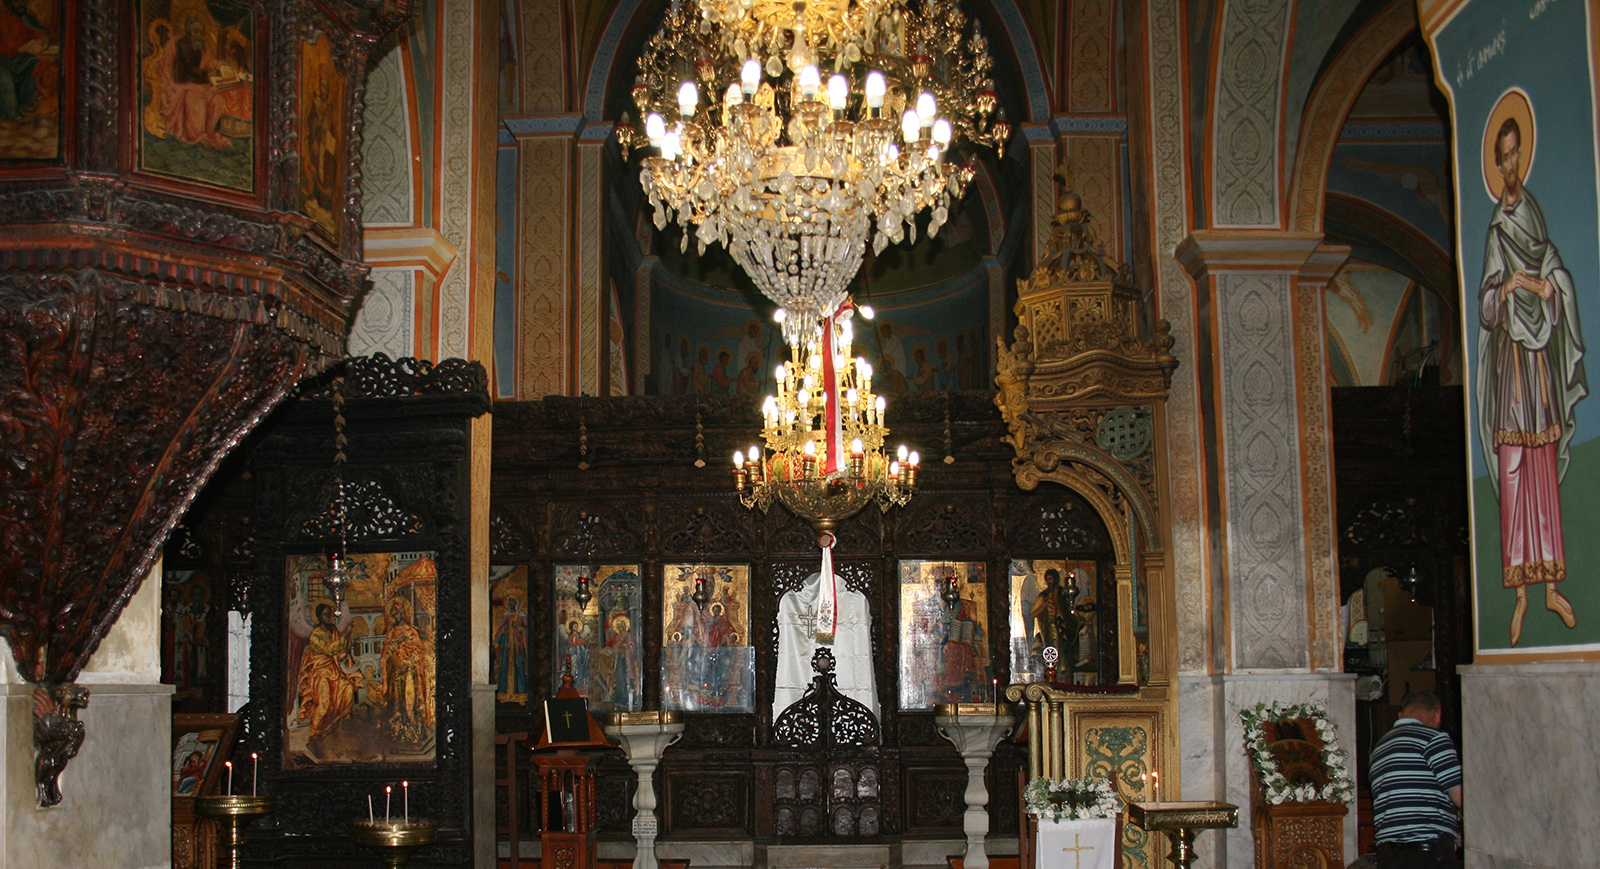 The Greek Orthodox Church of Annunciation in Nazareth